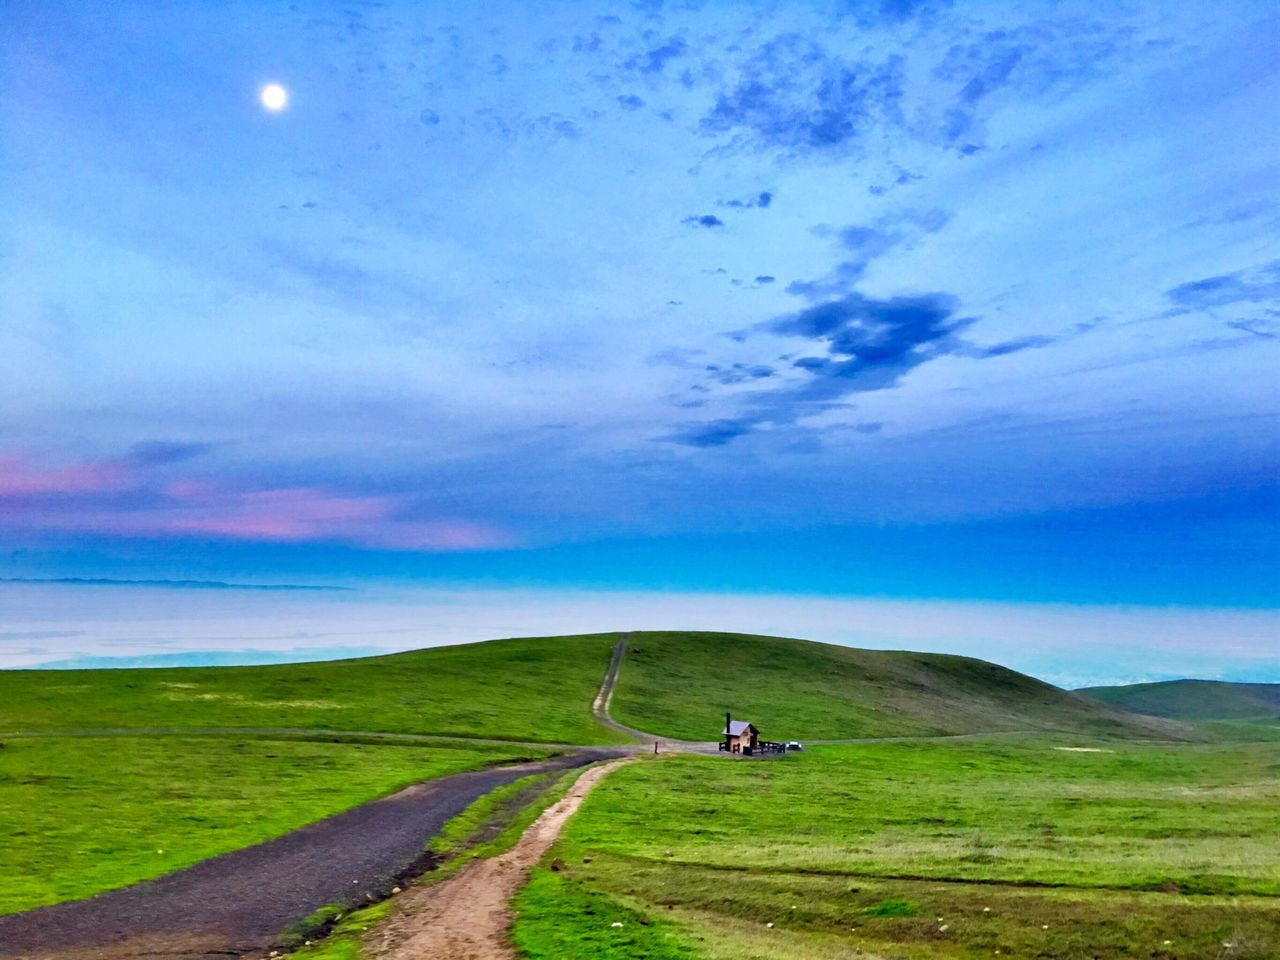 Mission Peak in Fremont, Ca last year. Hiked early and watched the sunrise. Sky Real People Grass Beauty In Nature Nature Outdoors The Way Forward Transportation Tranquility Scenics Landscape Tranquil Scene Cloud - Sky Day Men One Person Tree Mountain People